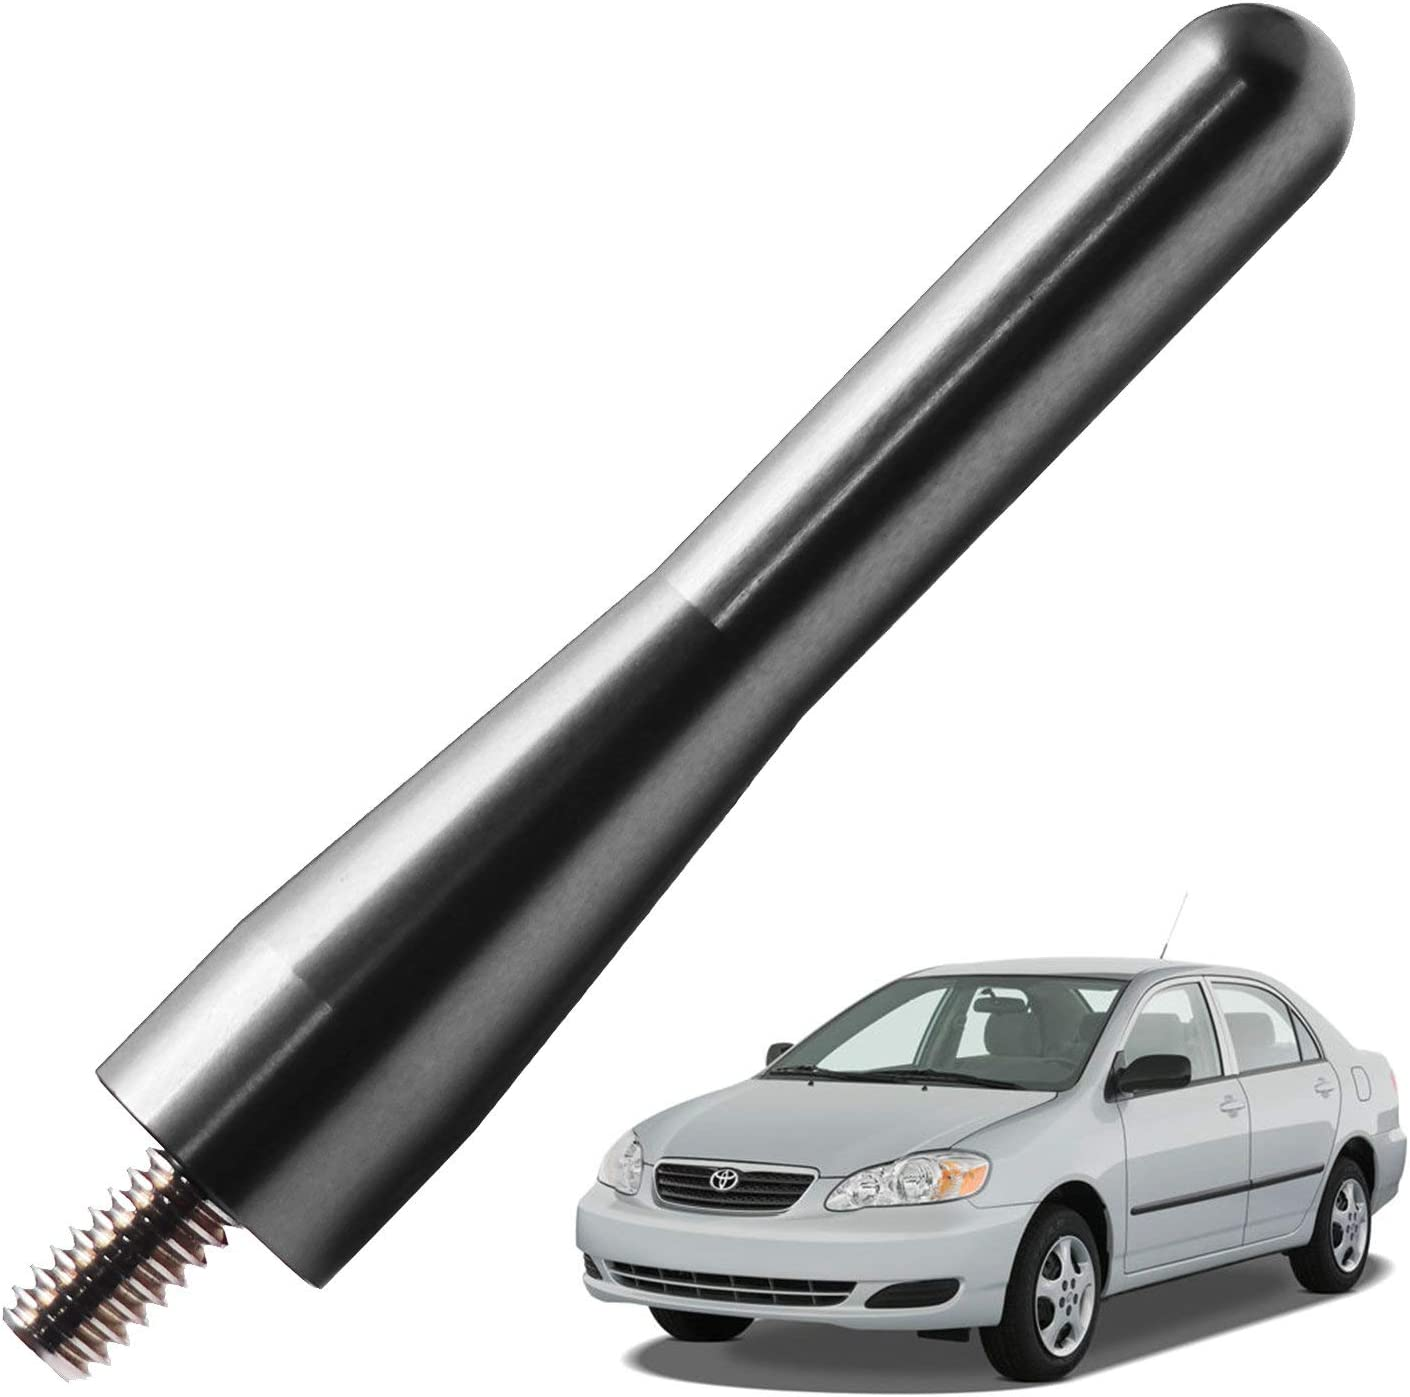 JAPower Replacement Antenna Compatible with Toyota Corolla 2003-2008 3 inches-Titanium